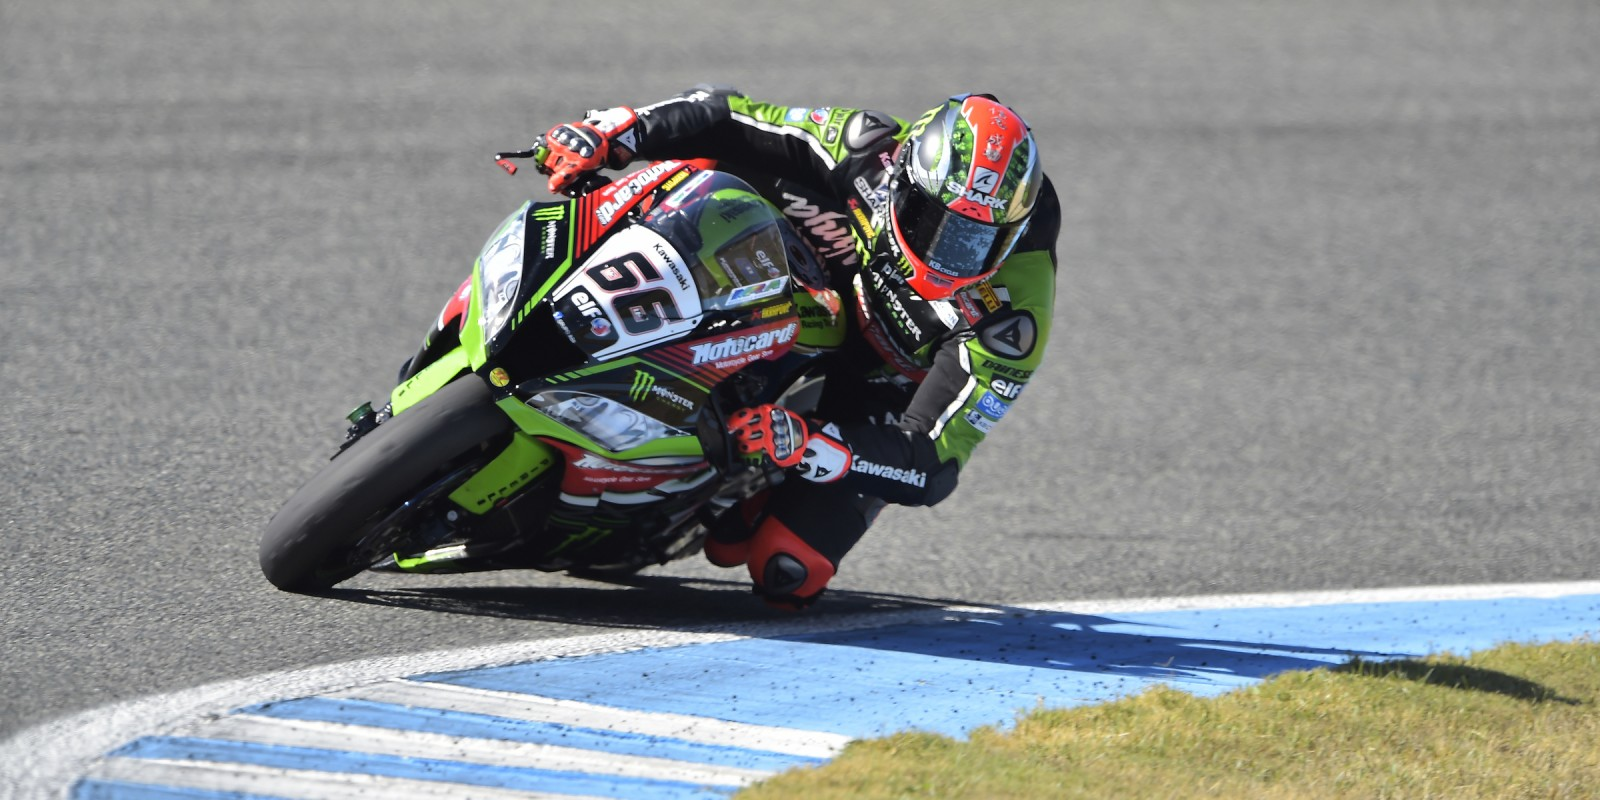 Tom Sykes at the 2016 World Superbike Gaerne Spanish Round